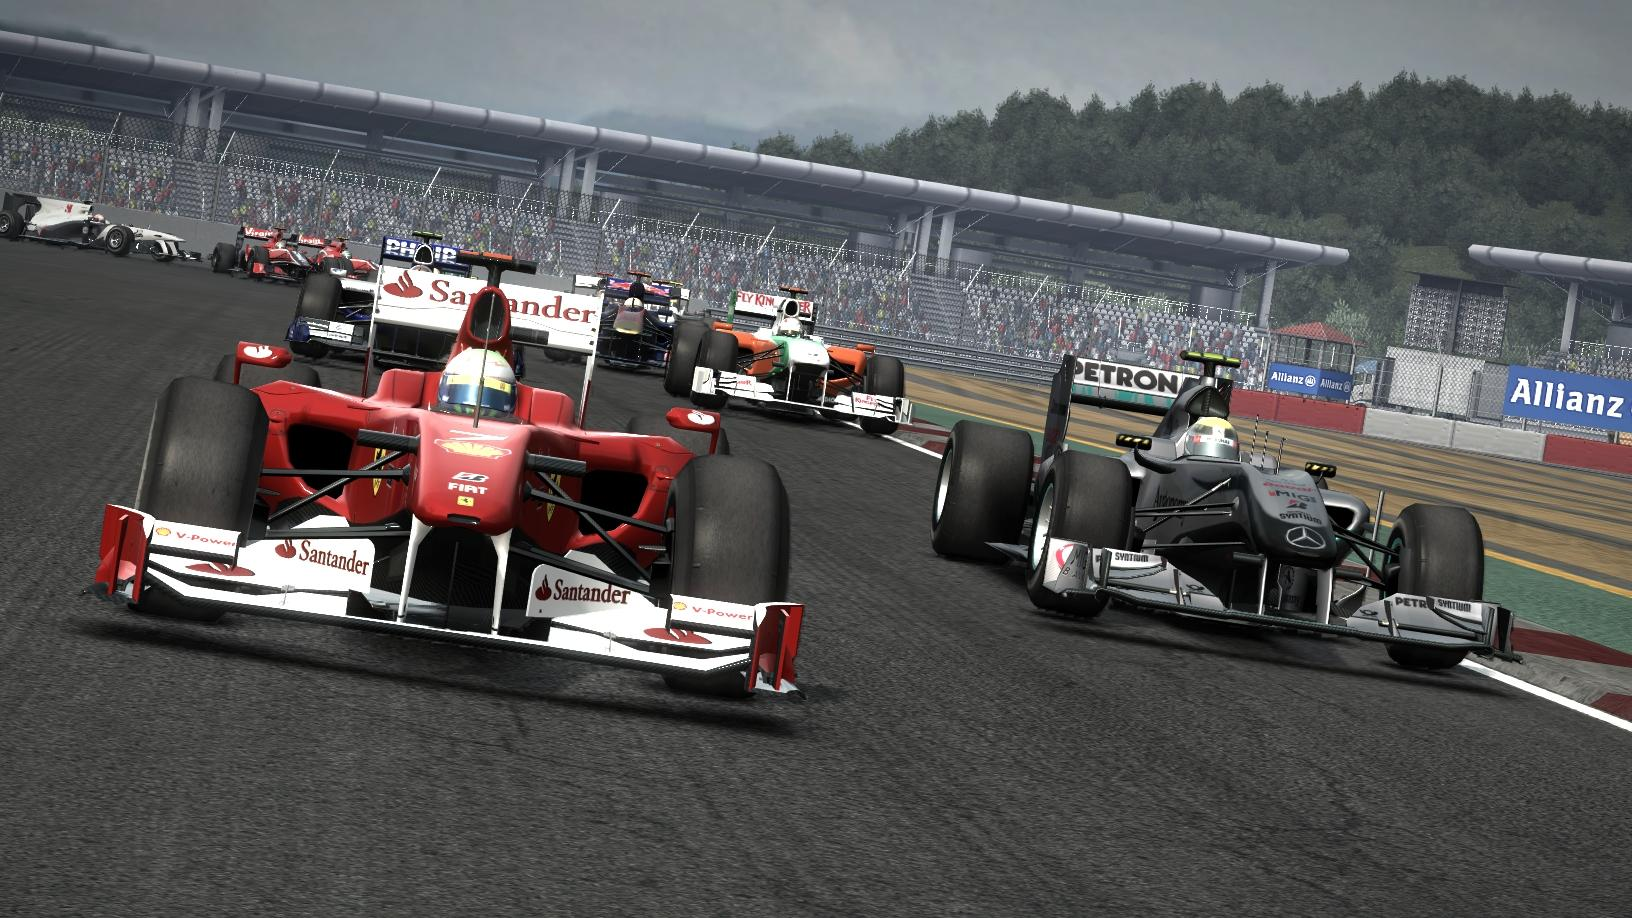 F1 2010 - Screenshots dal circuito